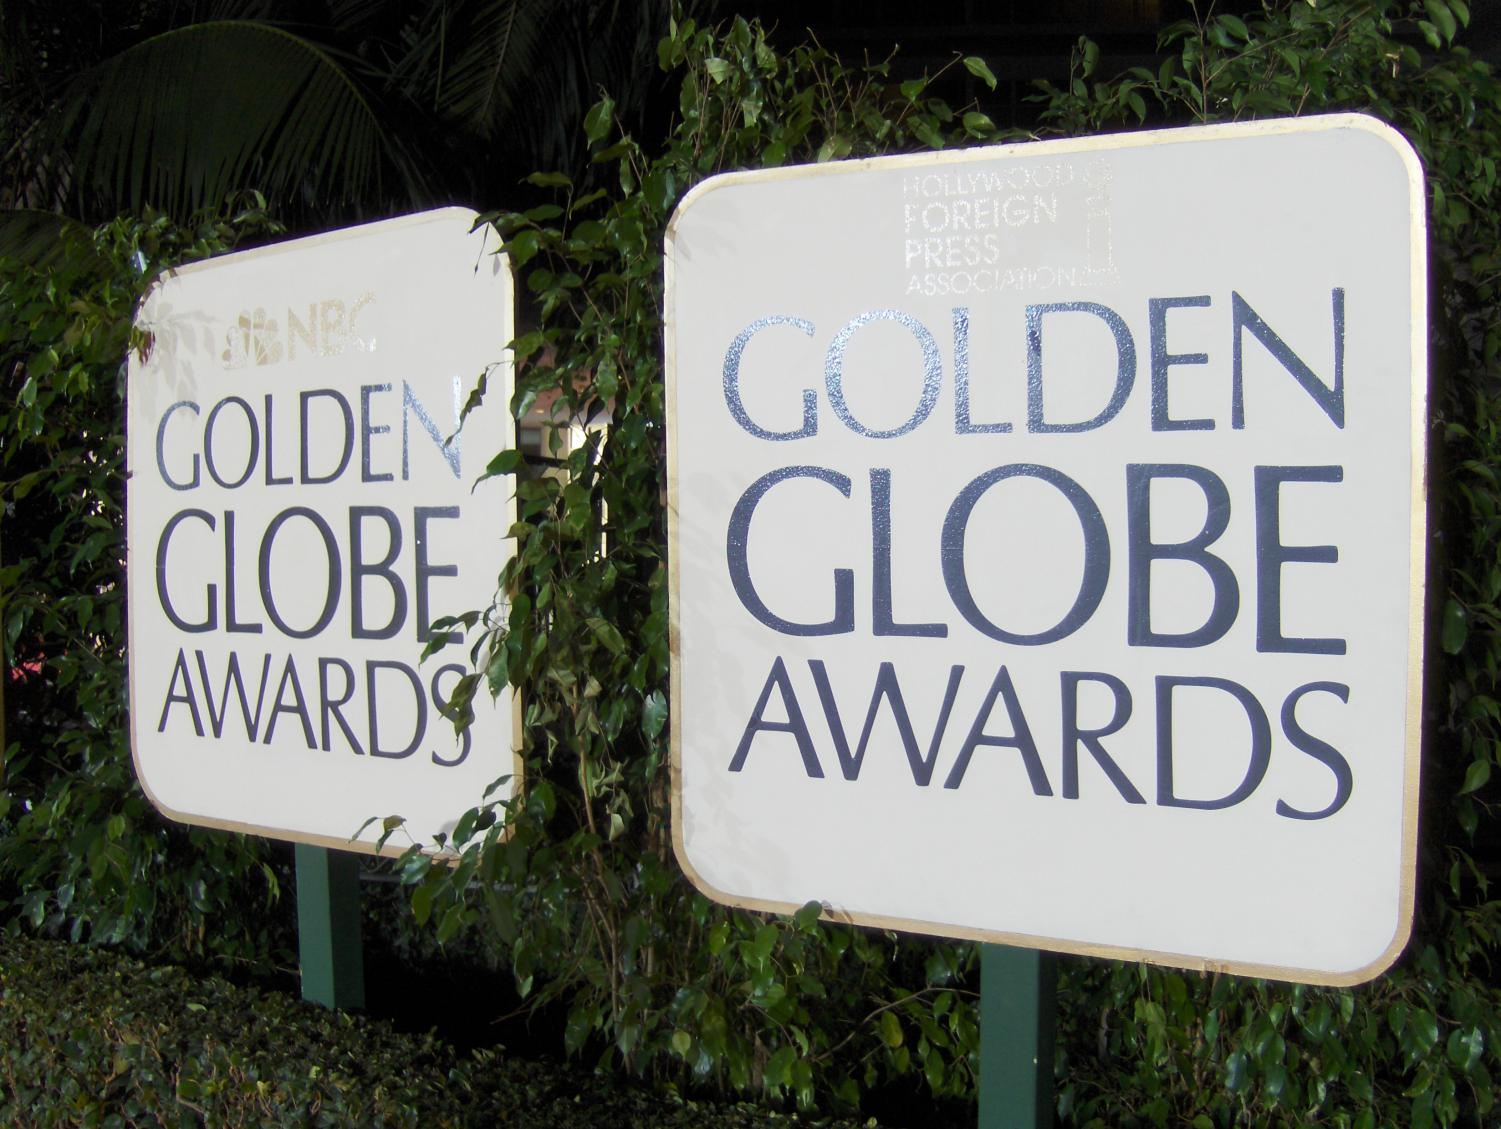 Female actresses acknowledge sexual harassment at the Golden Globe Awards show.